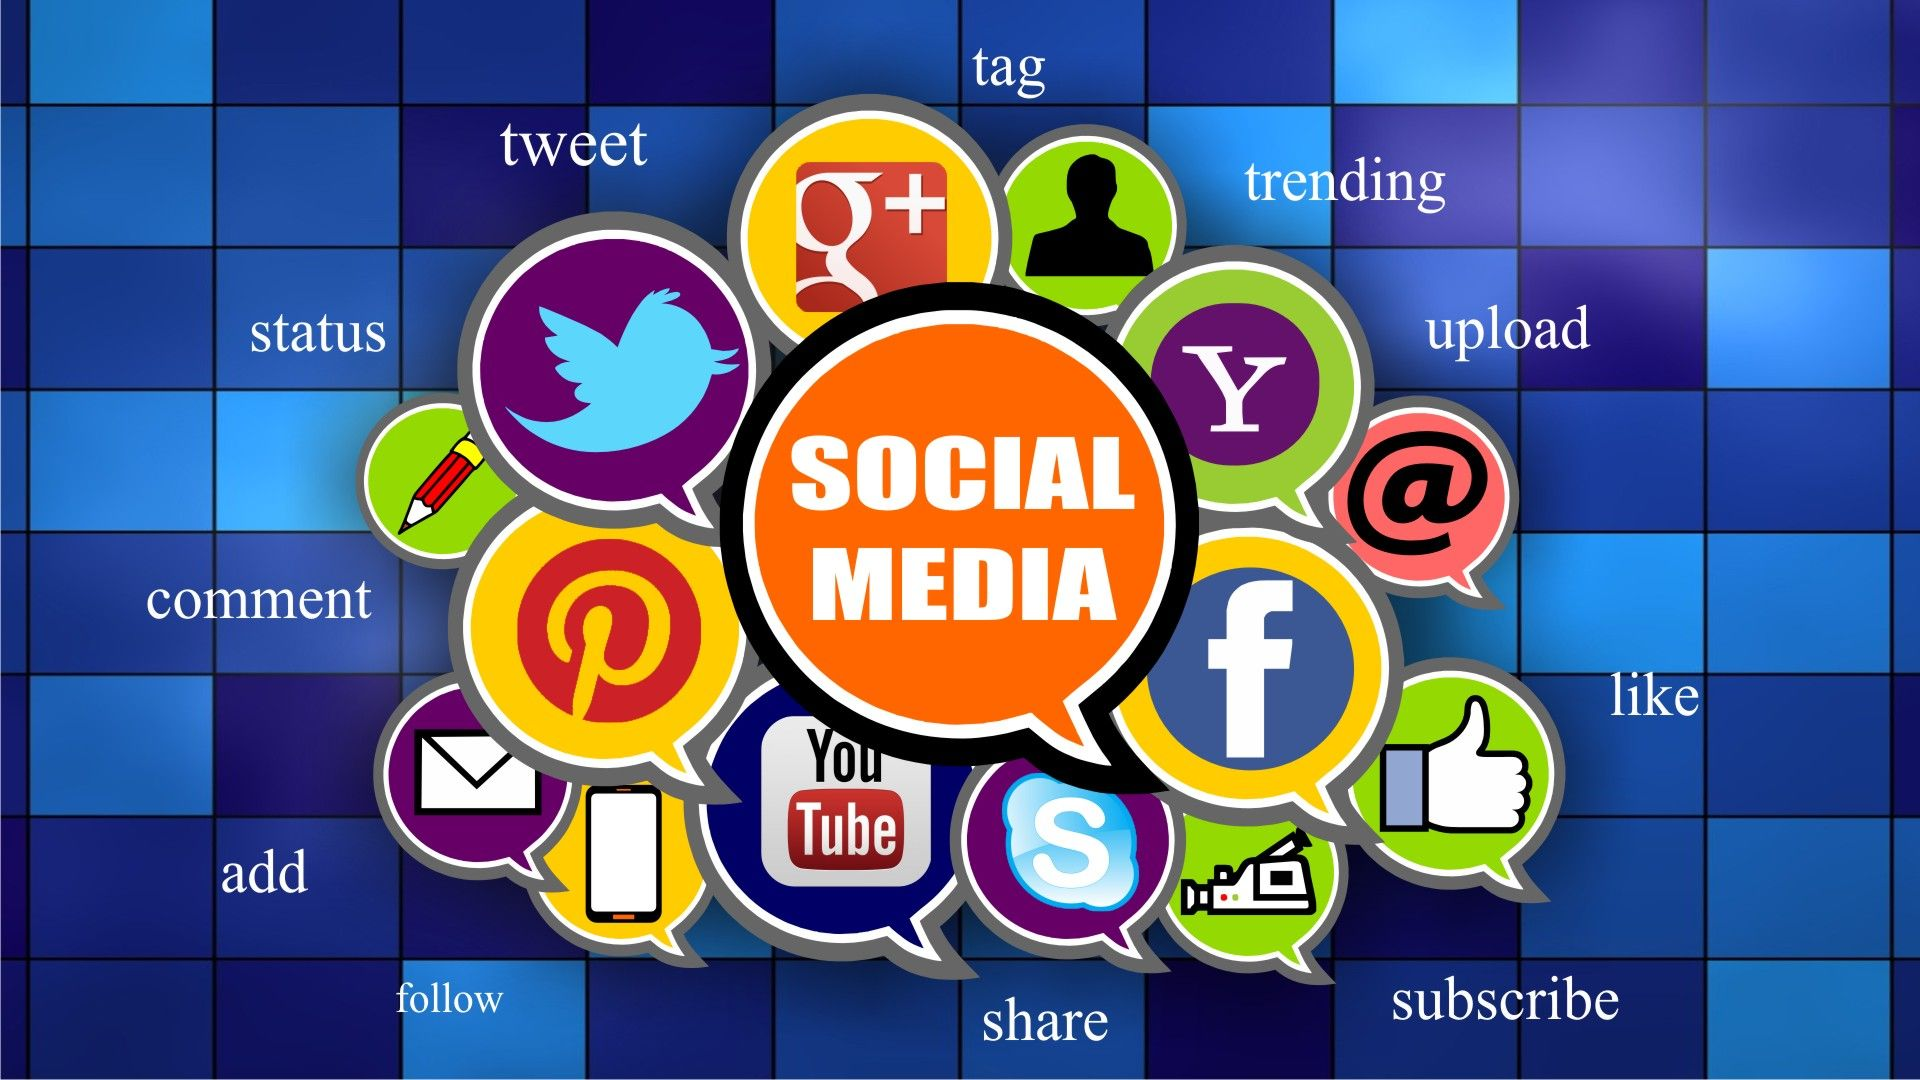 24-hour support in social media services to solve problems